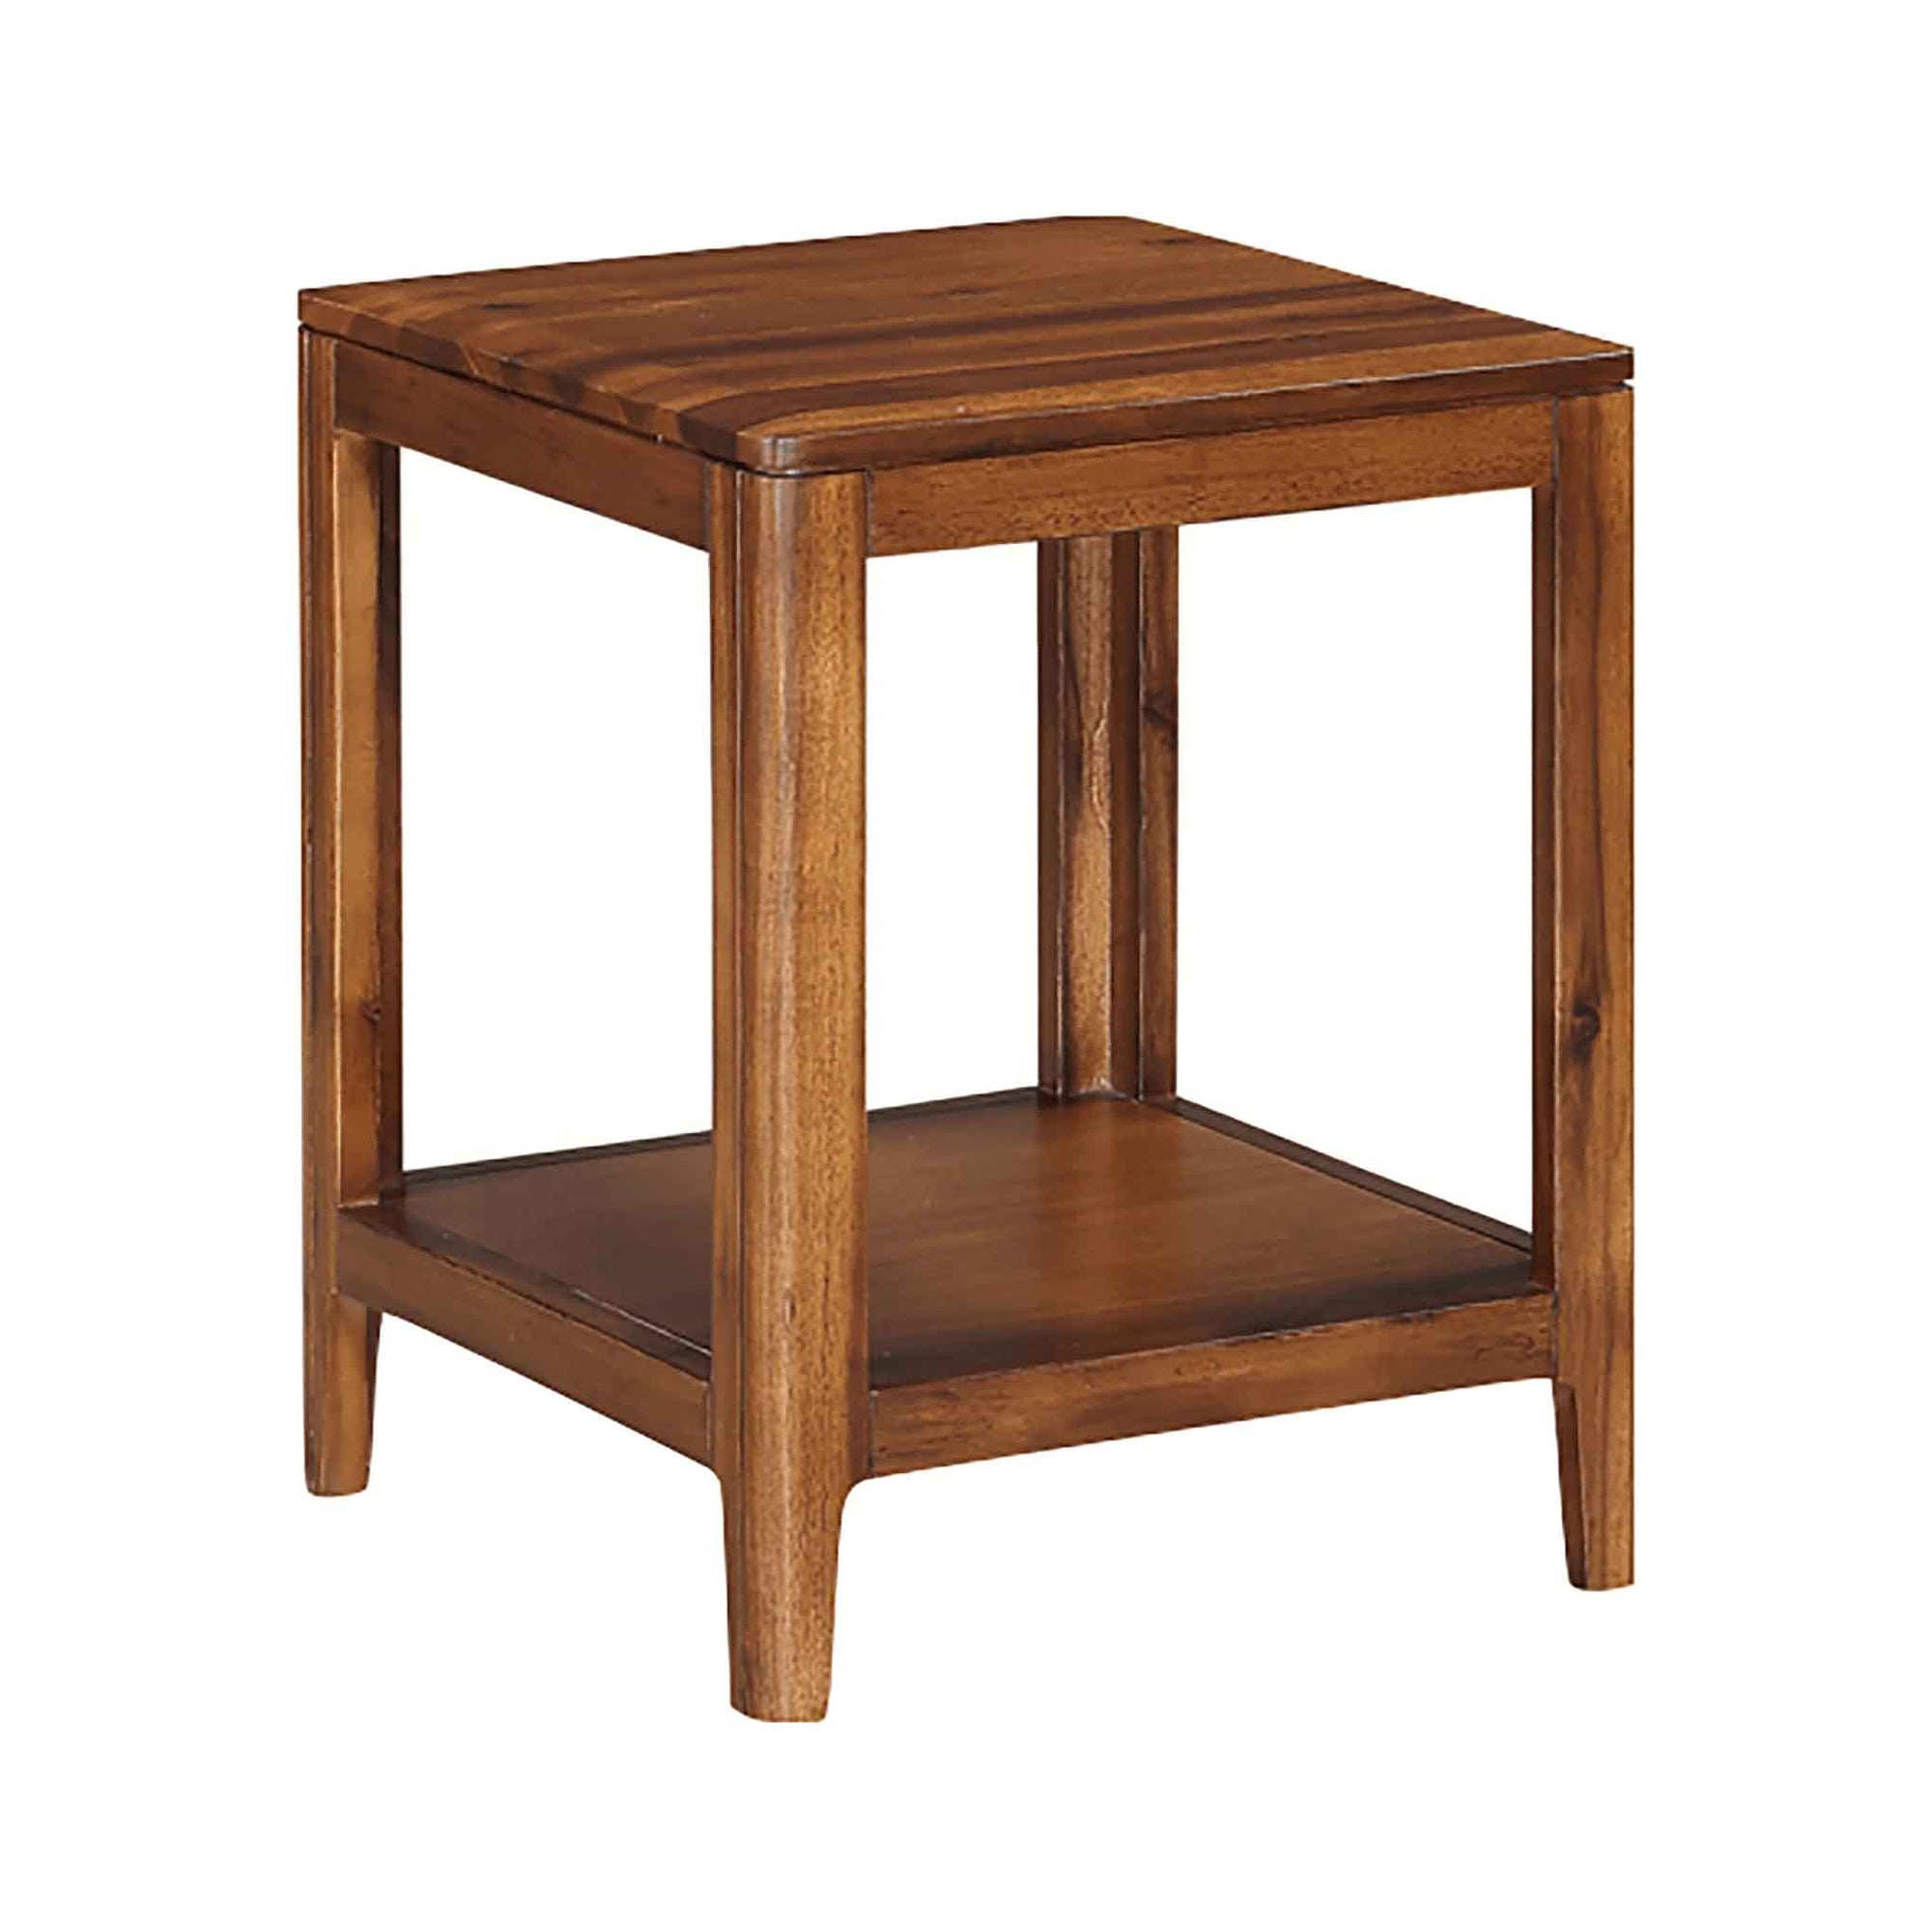 The Dunmore Acacia Dark Wood End Table from Roseland Furniture